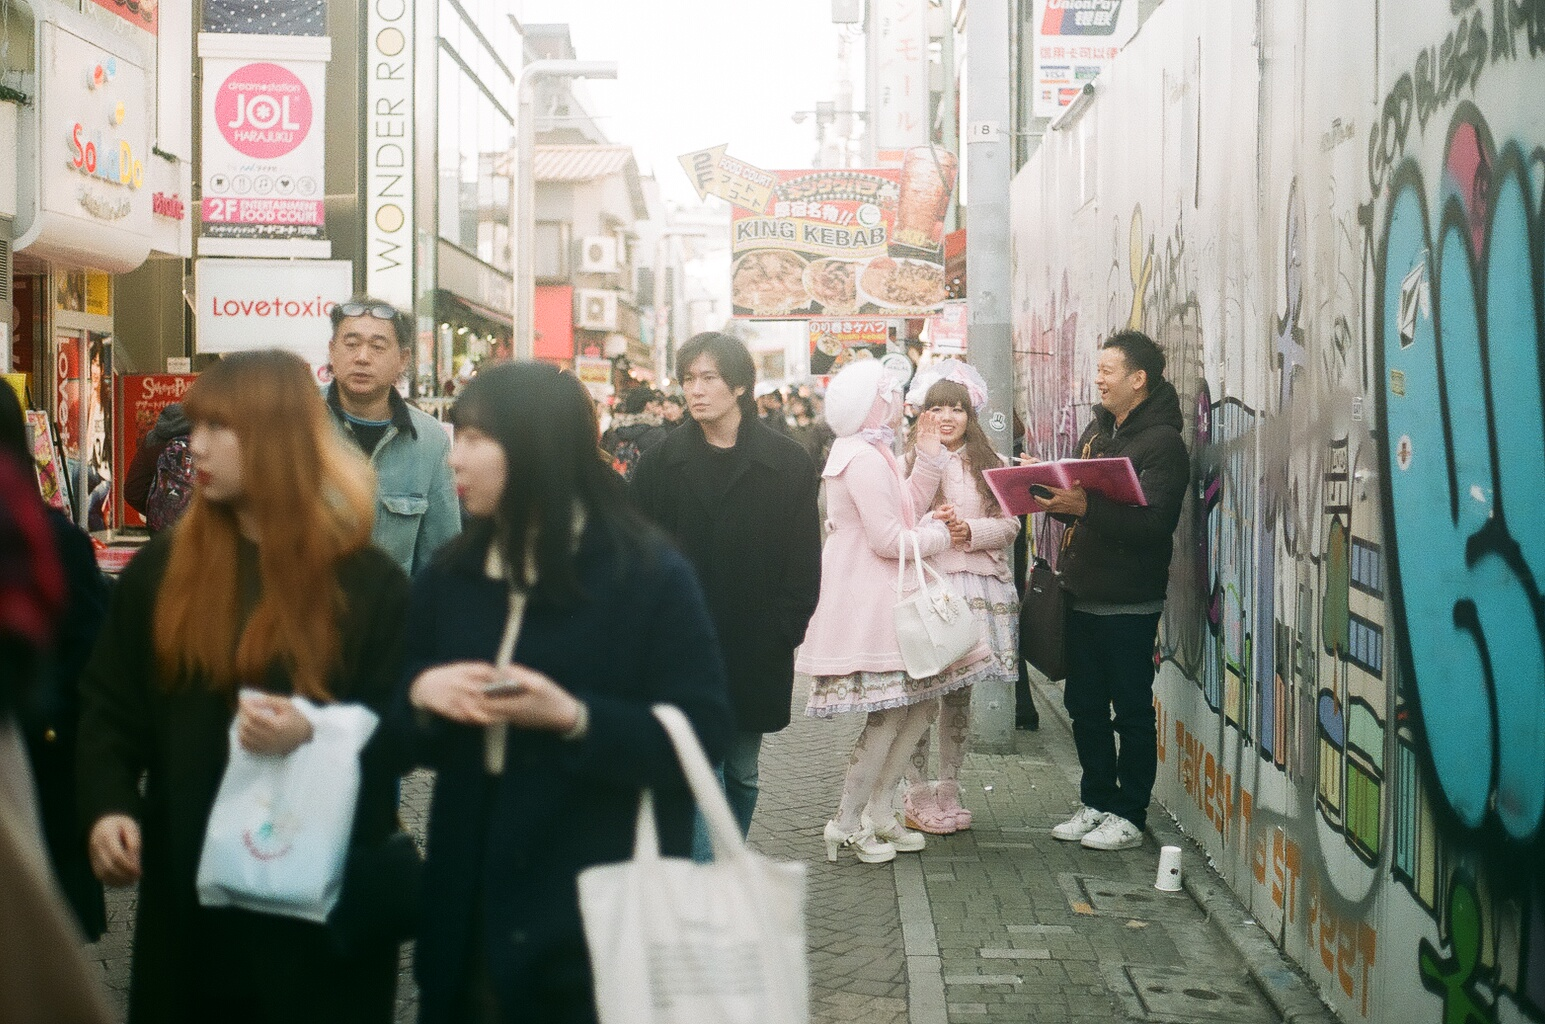 I was expecting to see these Harajuku girls or cosplay girls in Japan. What are they called again? They were all over the place.